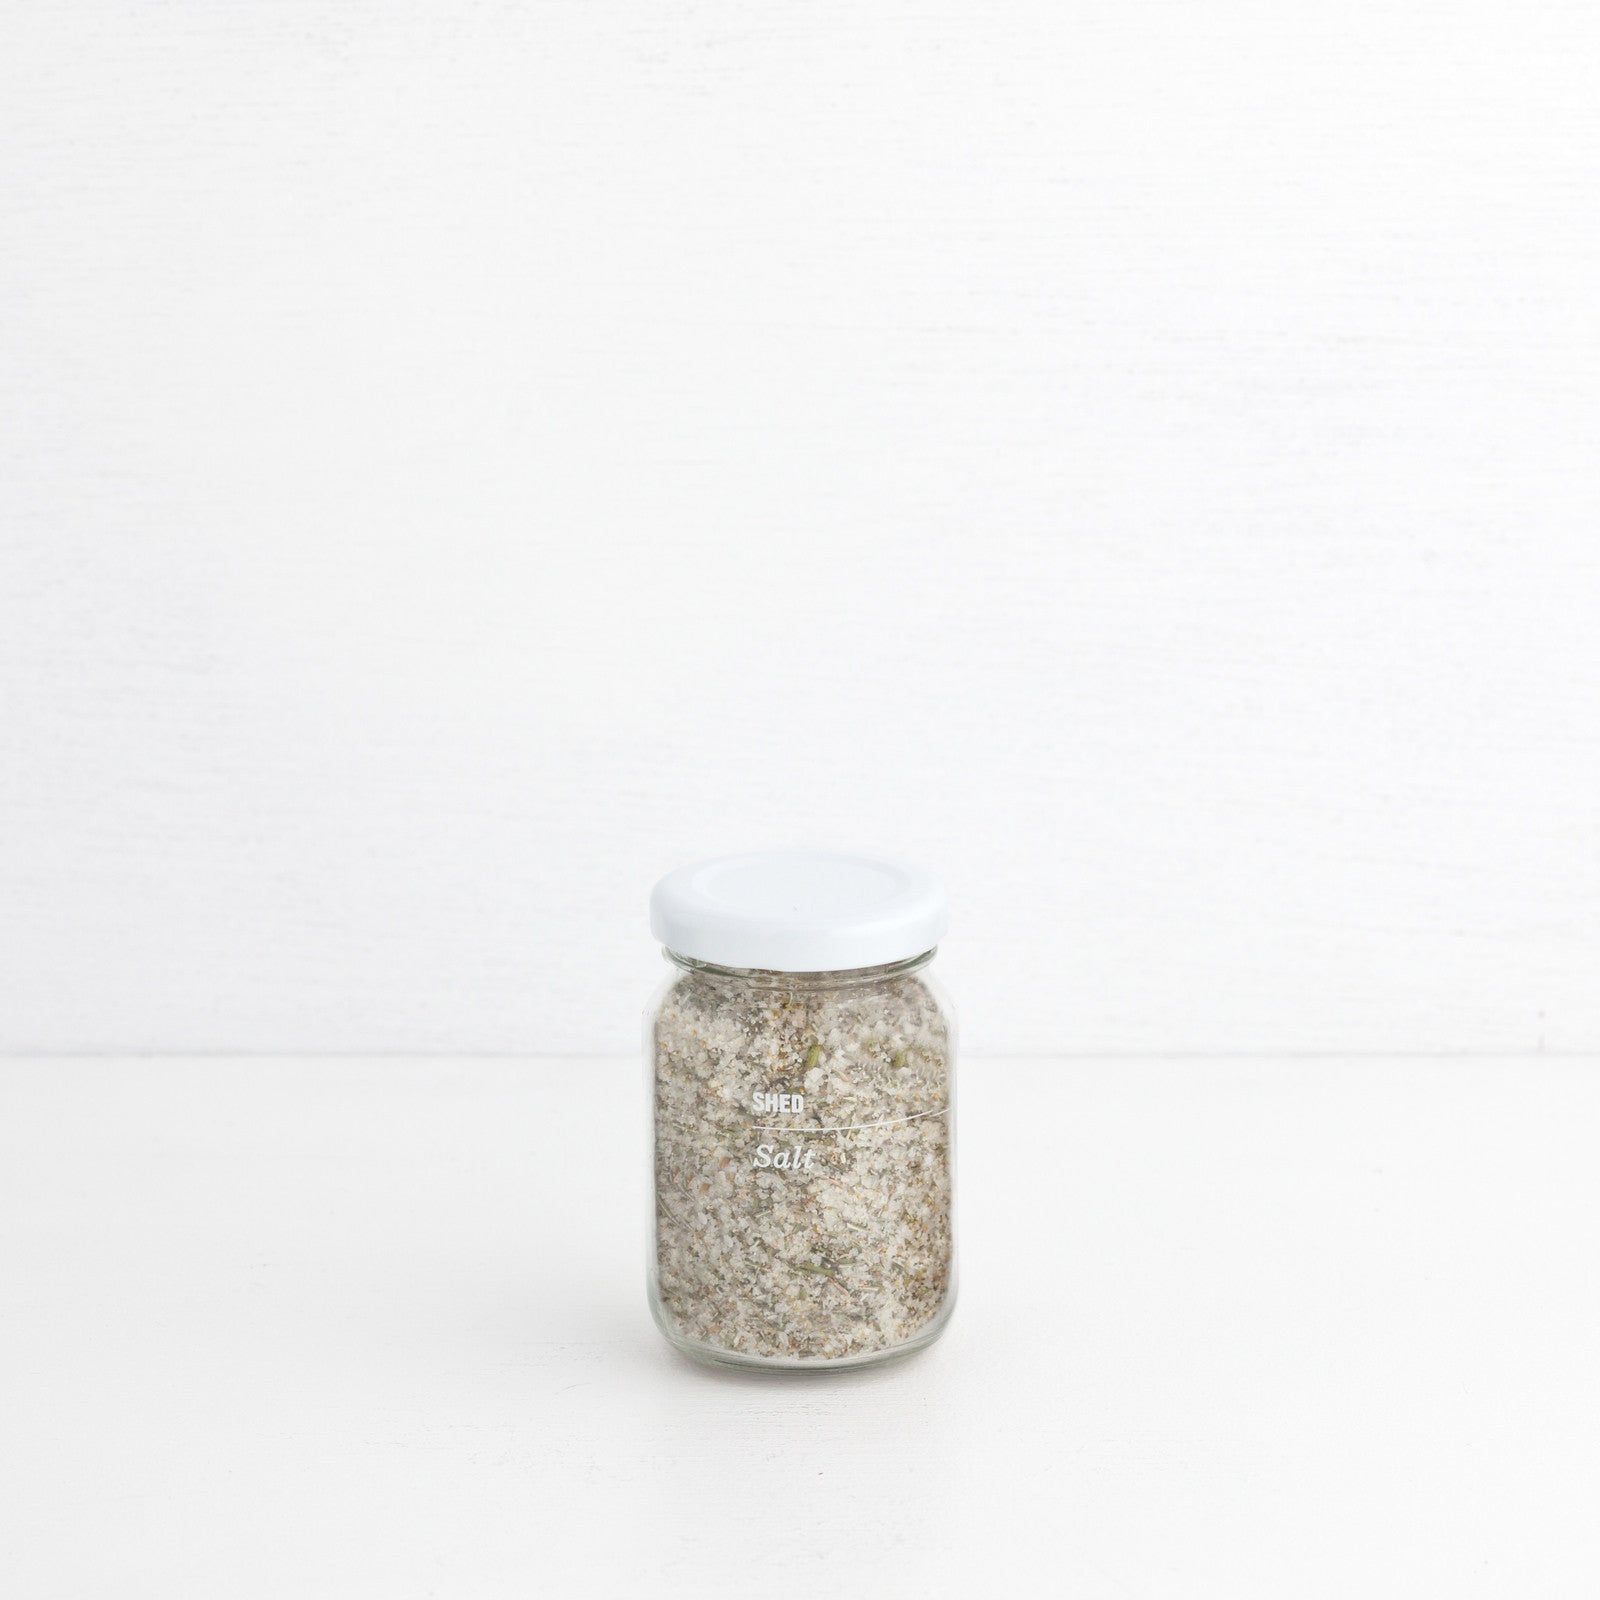 SHED Rosemary and Fennel Pollen Salt